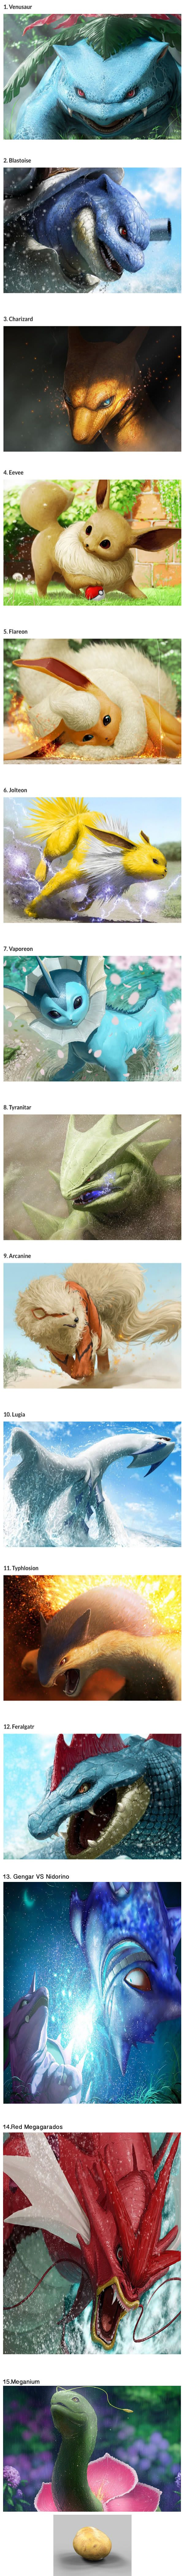 Japanese artist (dekunobou-kizakura) creates breathtaking realistic Pokemon paintings